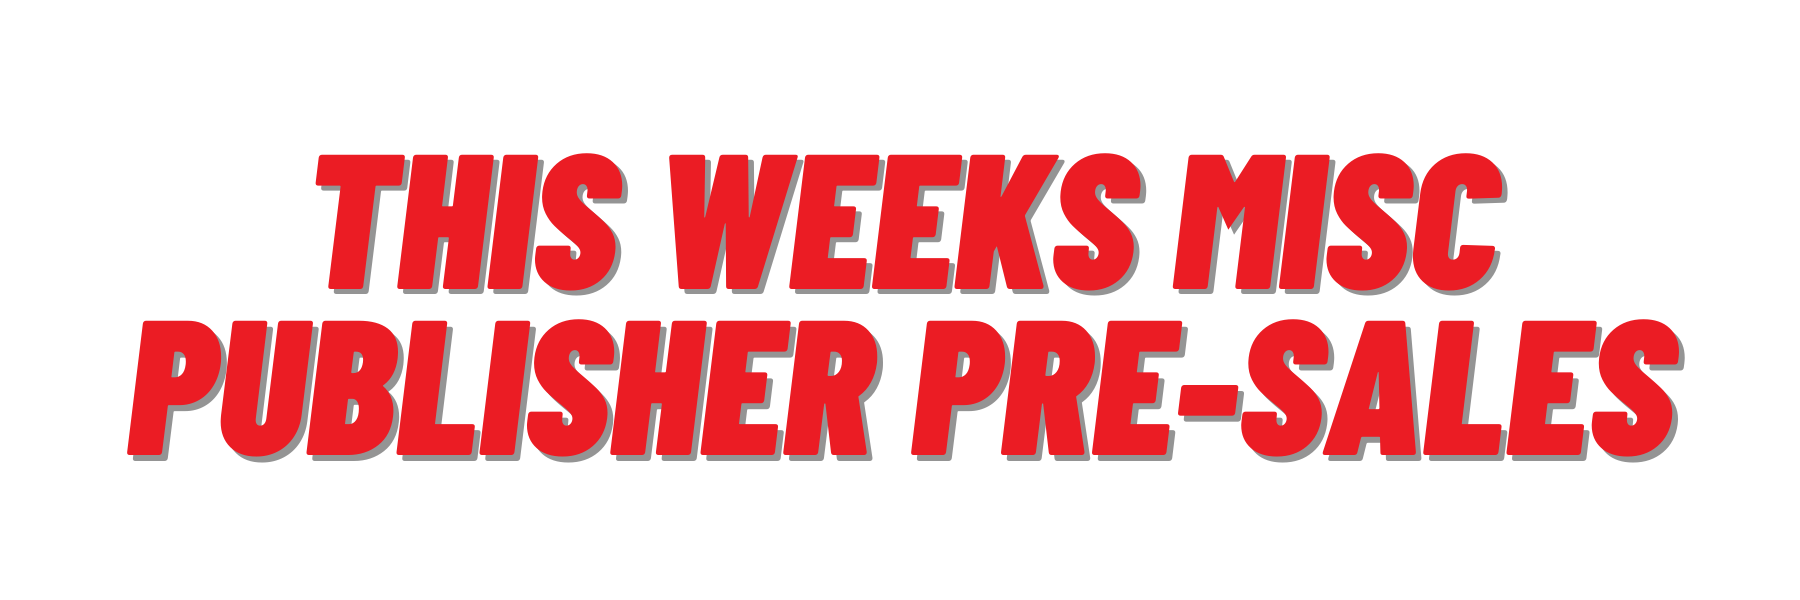 THIS WEEKS MISC PUBLISHER PRE-SALES